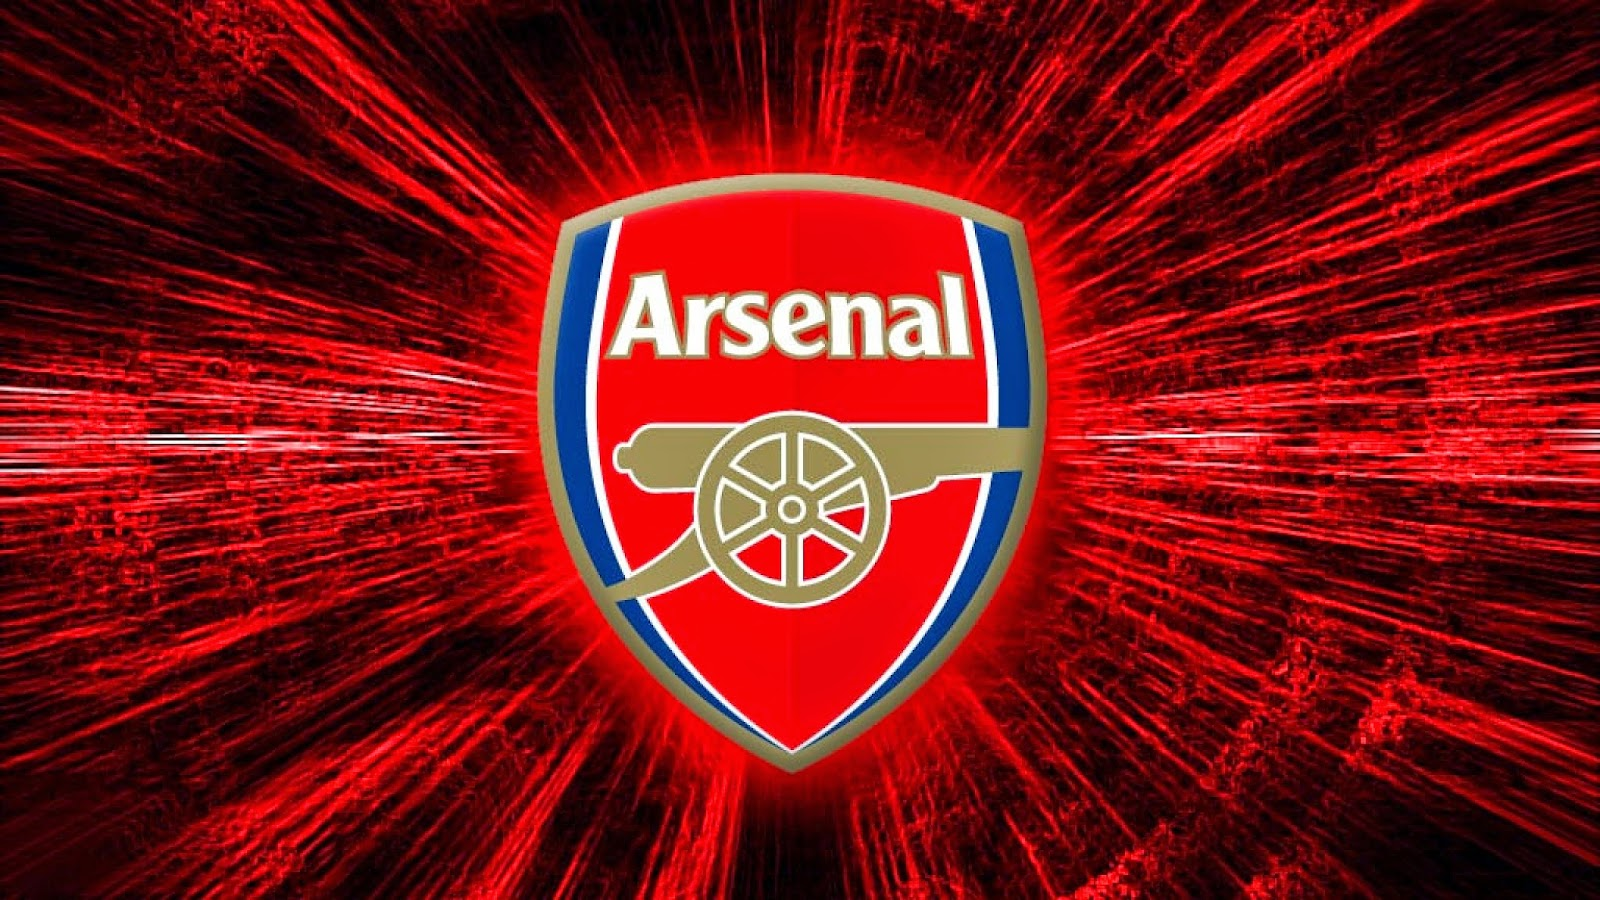 Arsenal | All the action from the casino floor: news, views and more